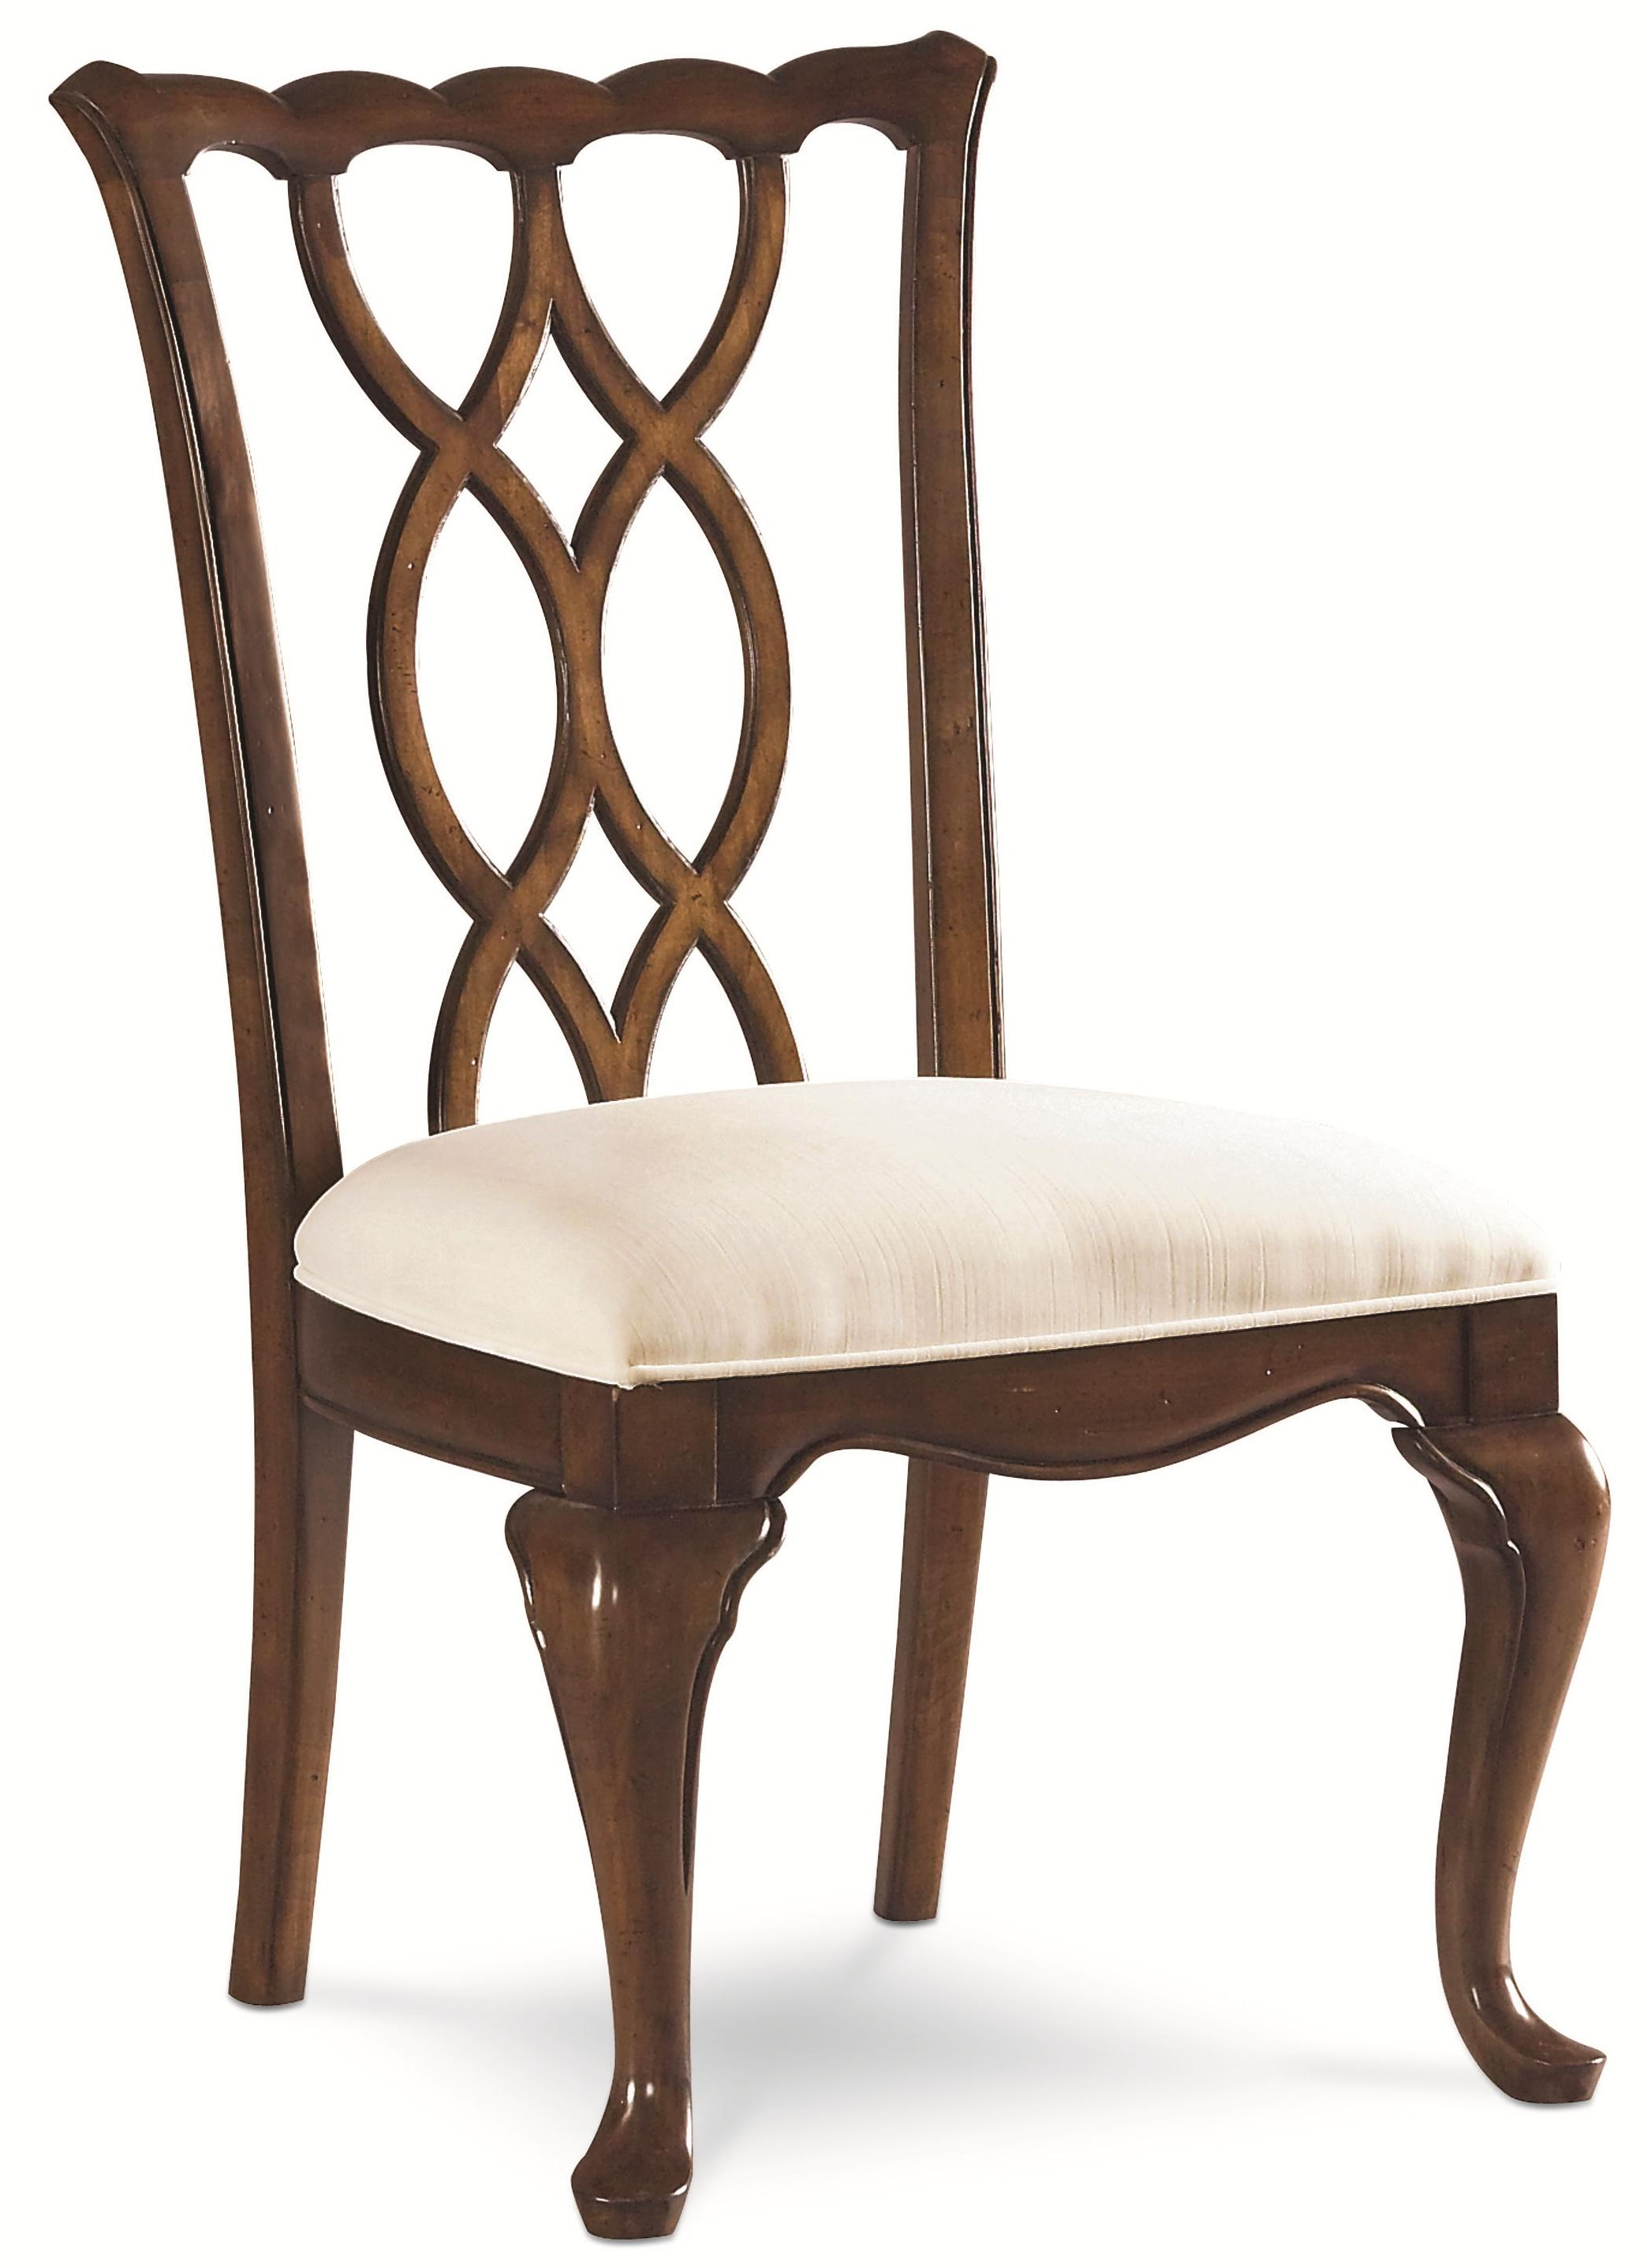 Thomasville® Tate Street Side Chair - Item Number: 46821-831